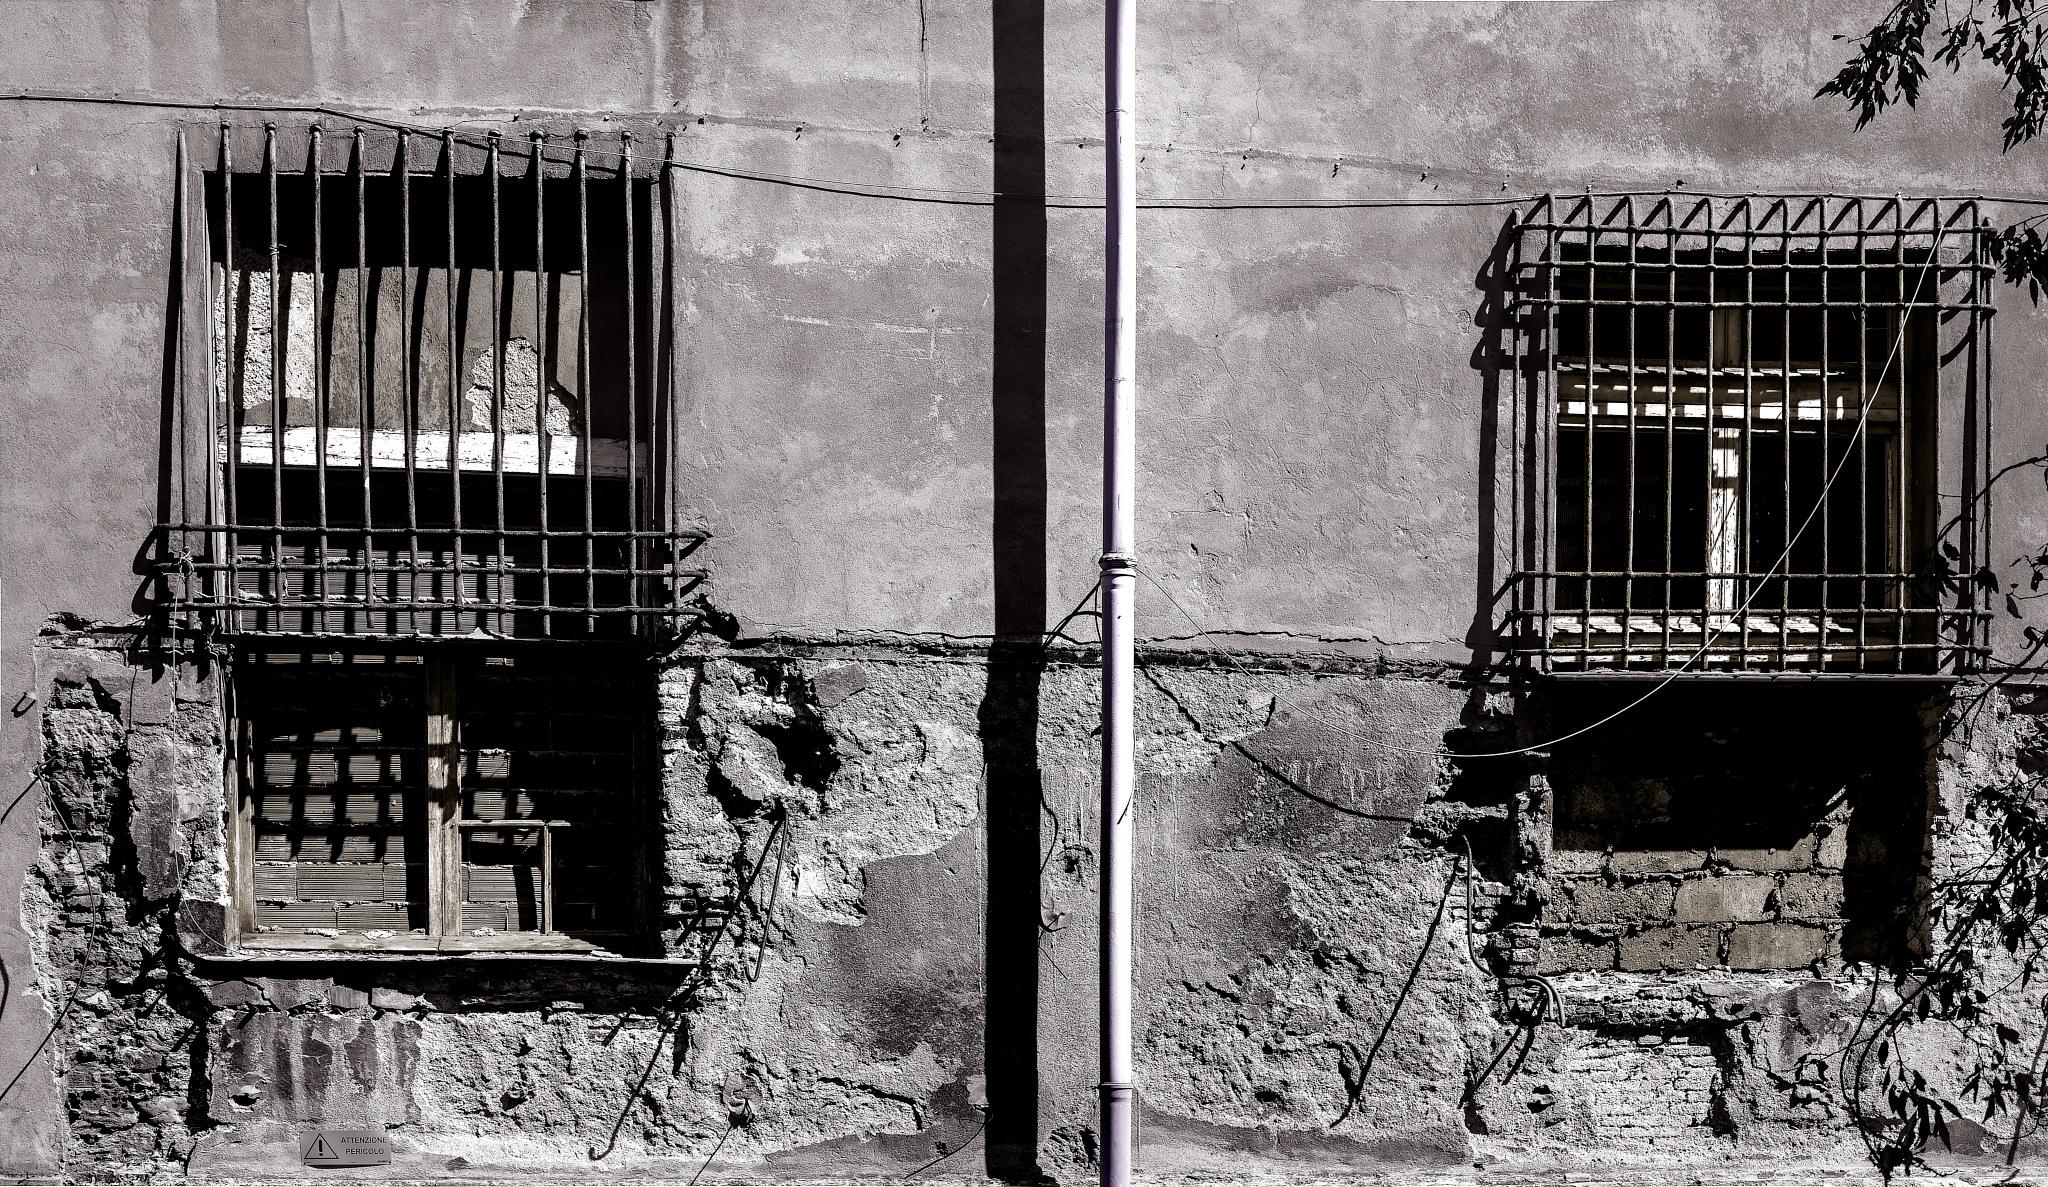 THE CITIES AND THE WINDOWS by    MAX  PENTINETTI